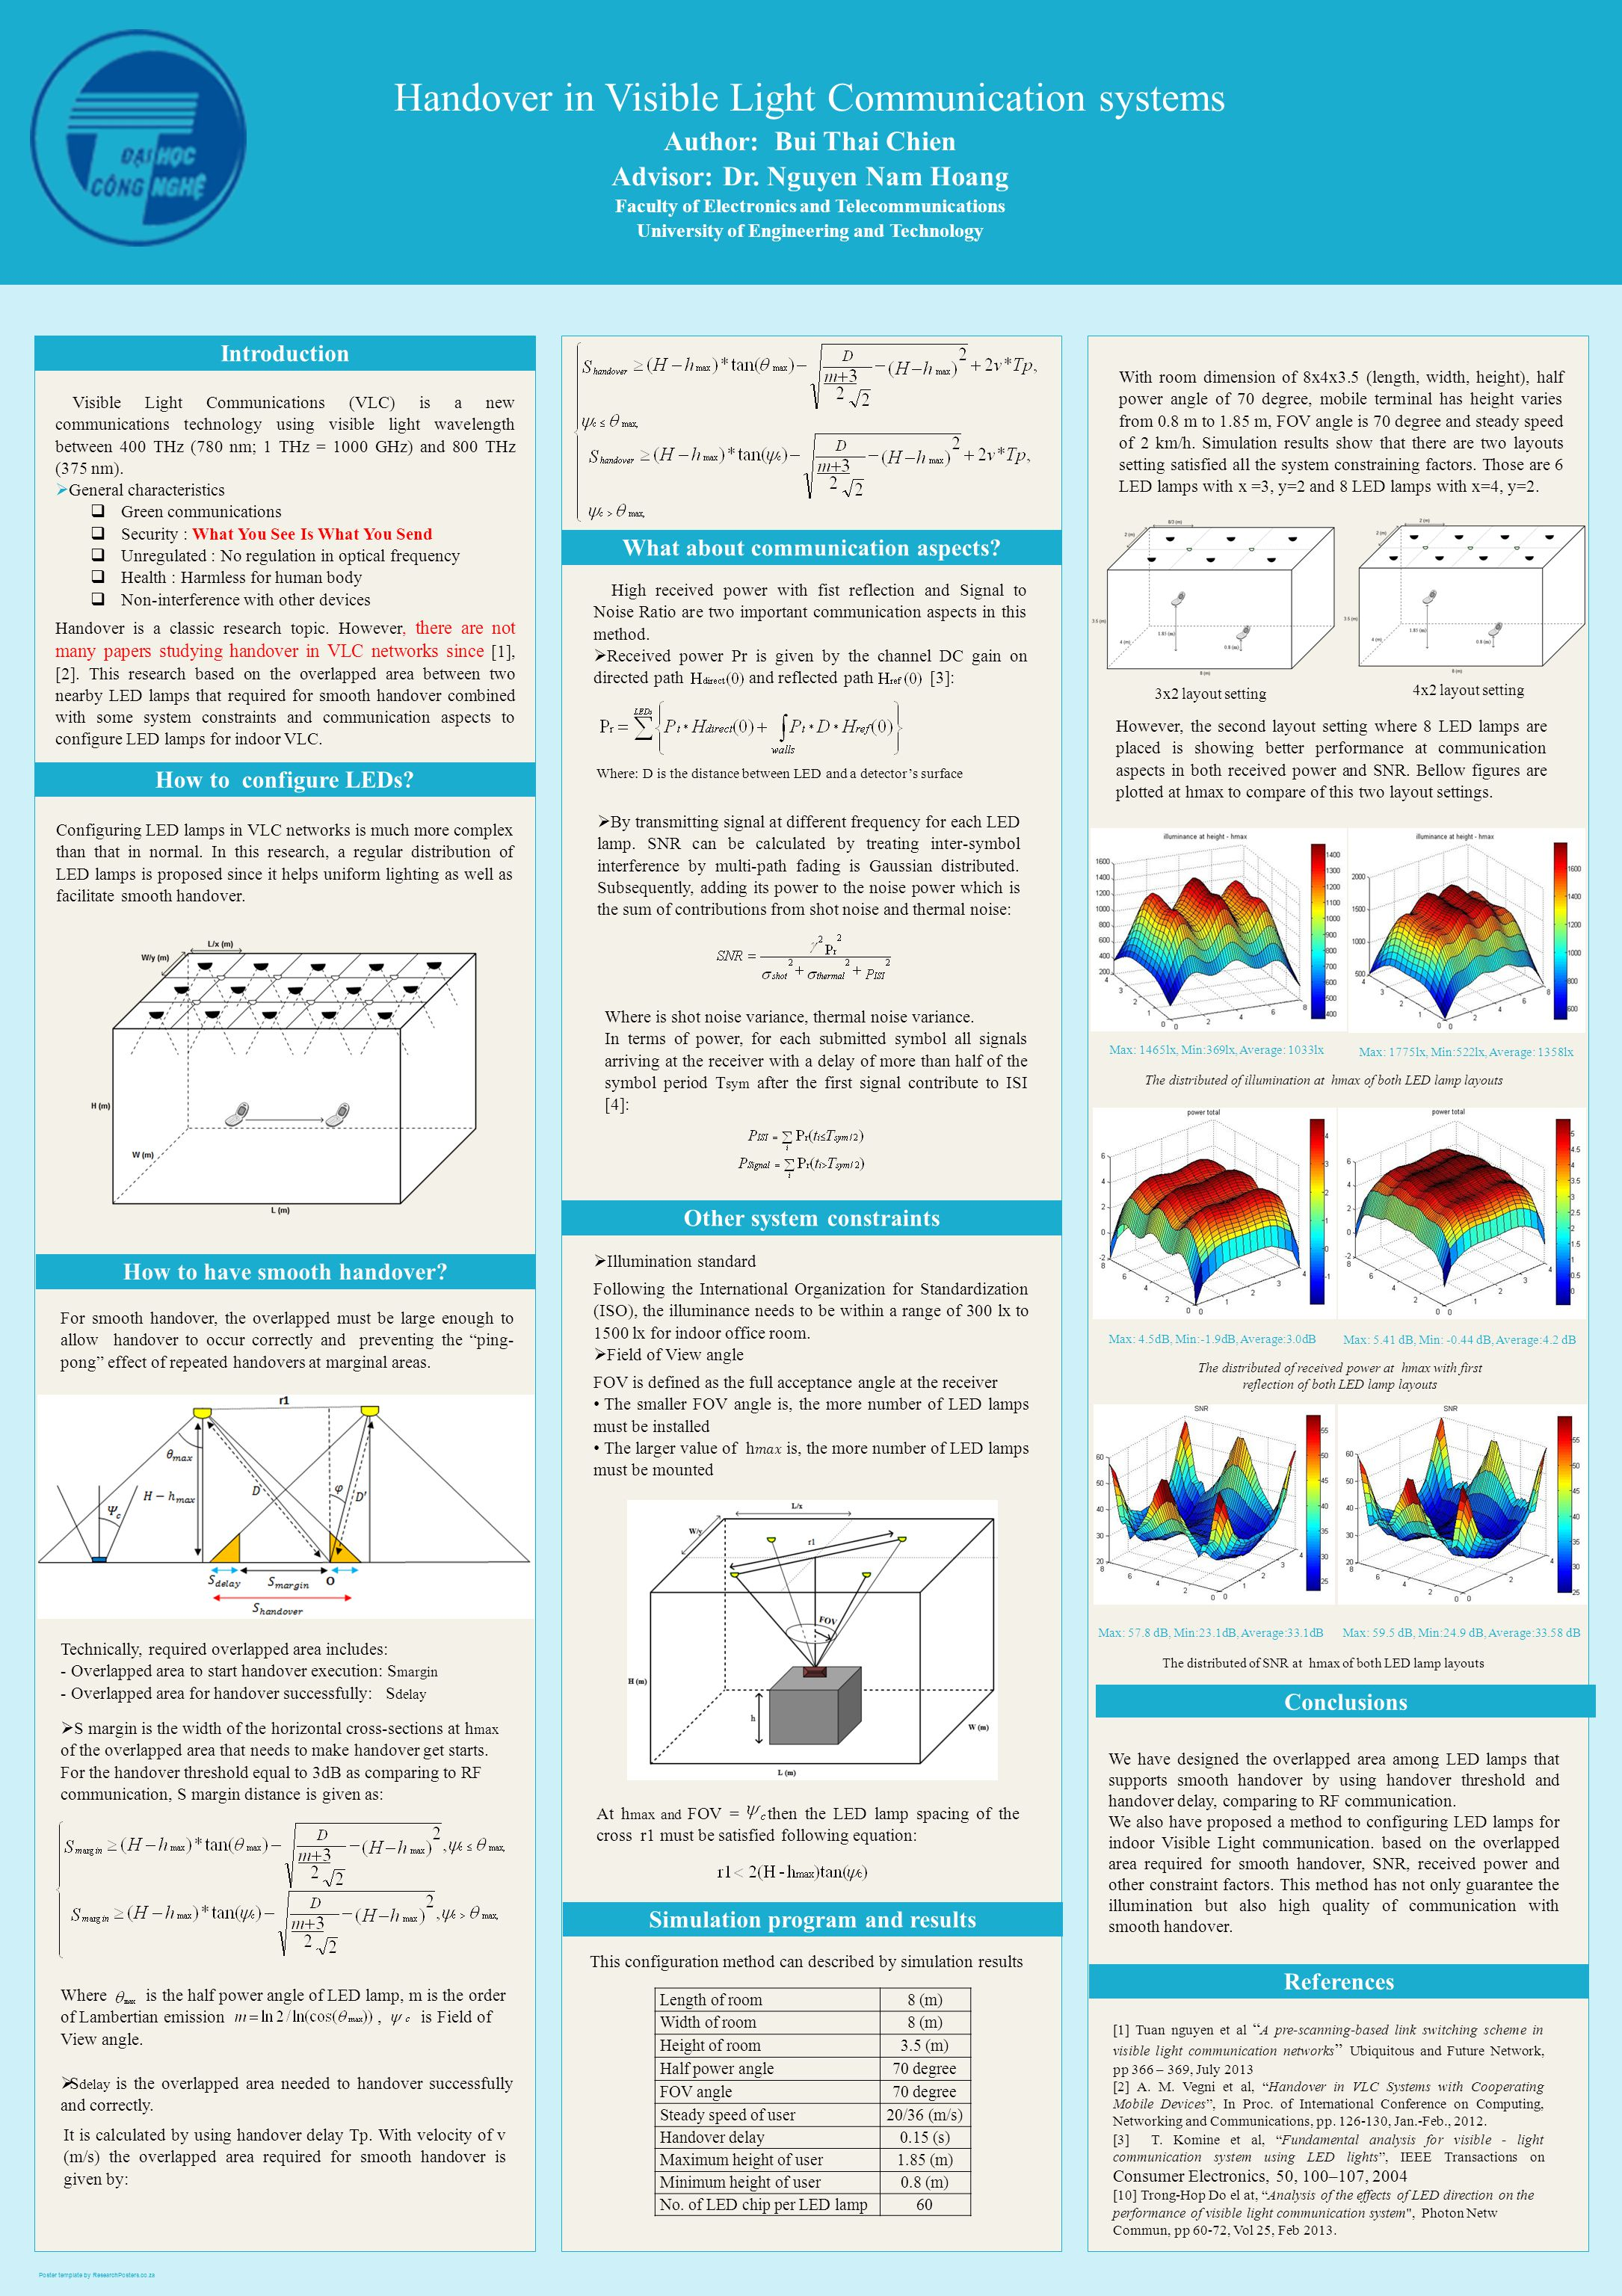 Poster template by ResearchPosters.co.za Handover in Visible Light Communication systems Author: Bui Thai Chien Advisor: Dr. Nguyen Nam Hoang Faculty